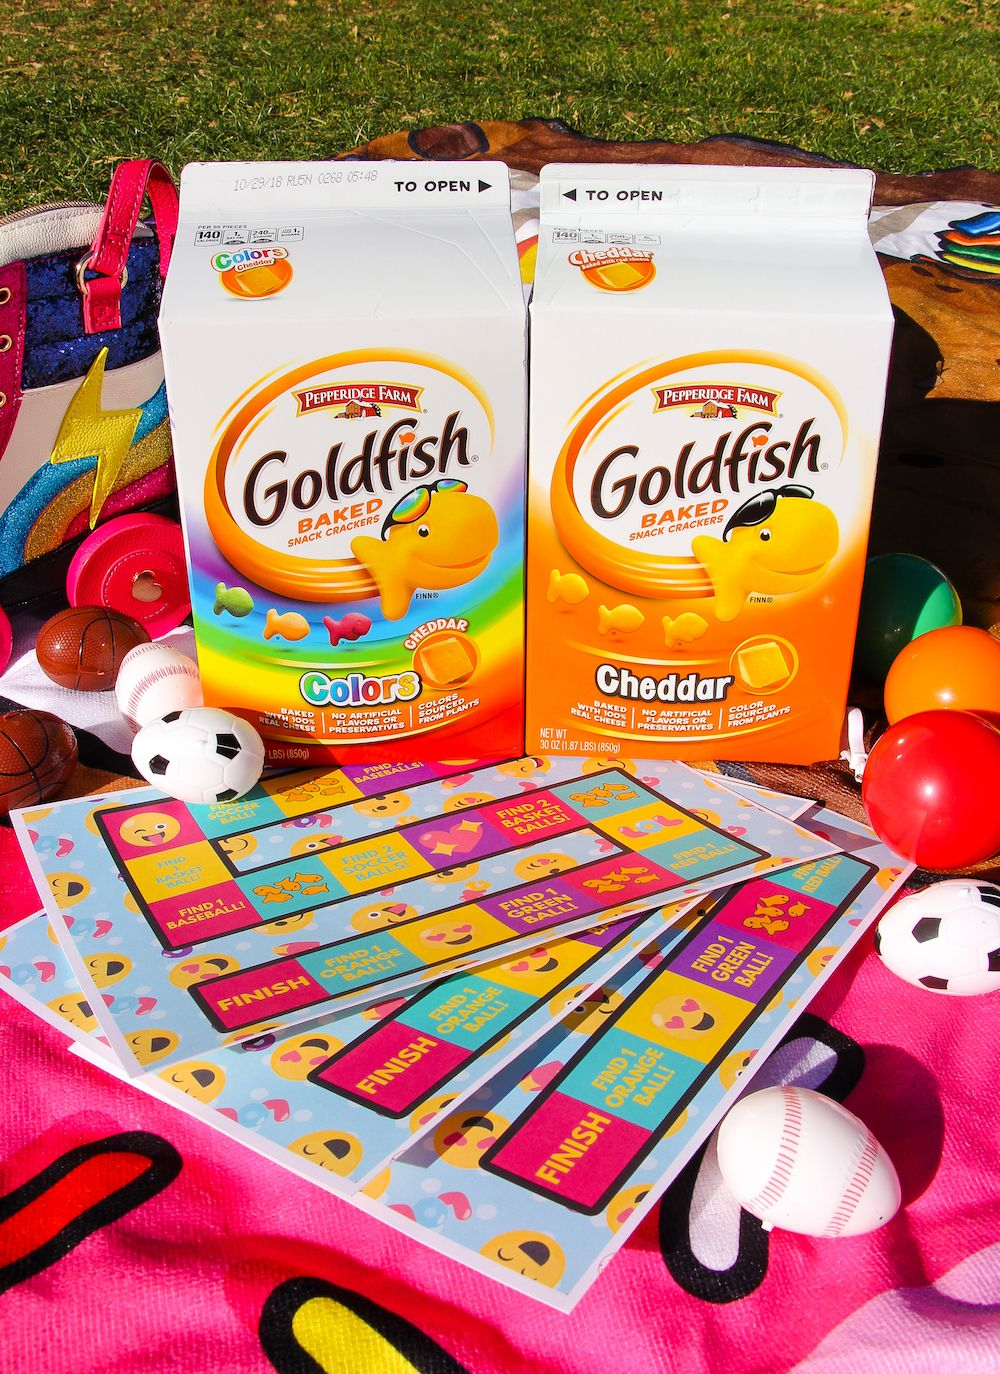 #ad - Check Out Our #DIY Find The Goldfish® Crackers Spring Time Game On The Blog Today! #GoldfishGameTime